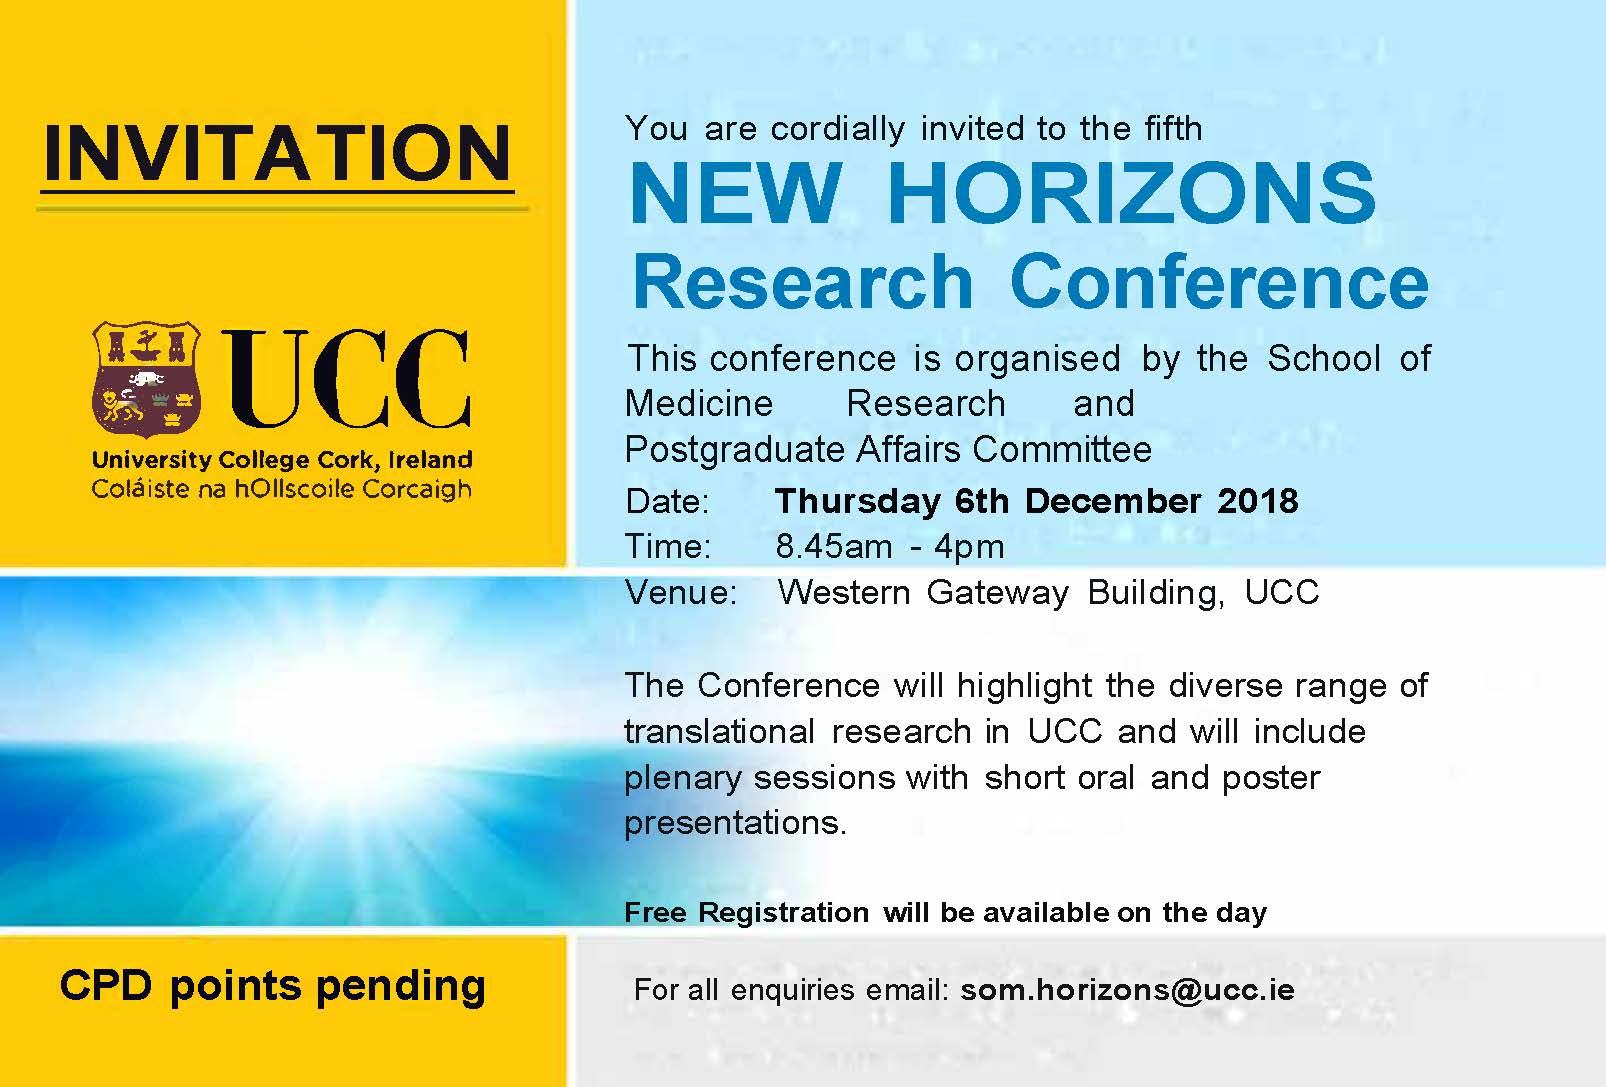 New Horizons Research Conference 2018